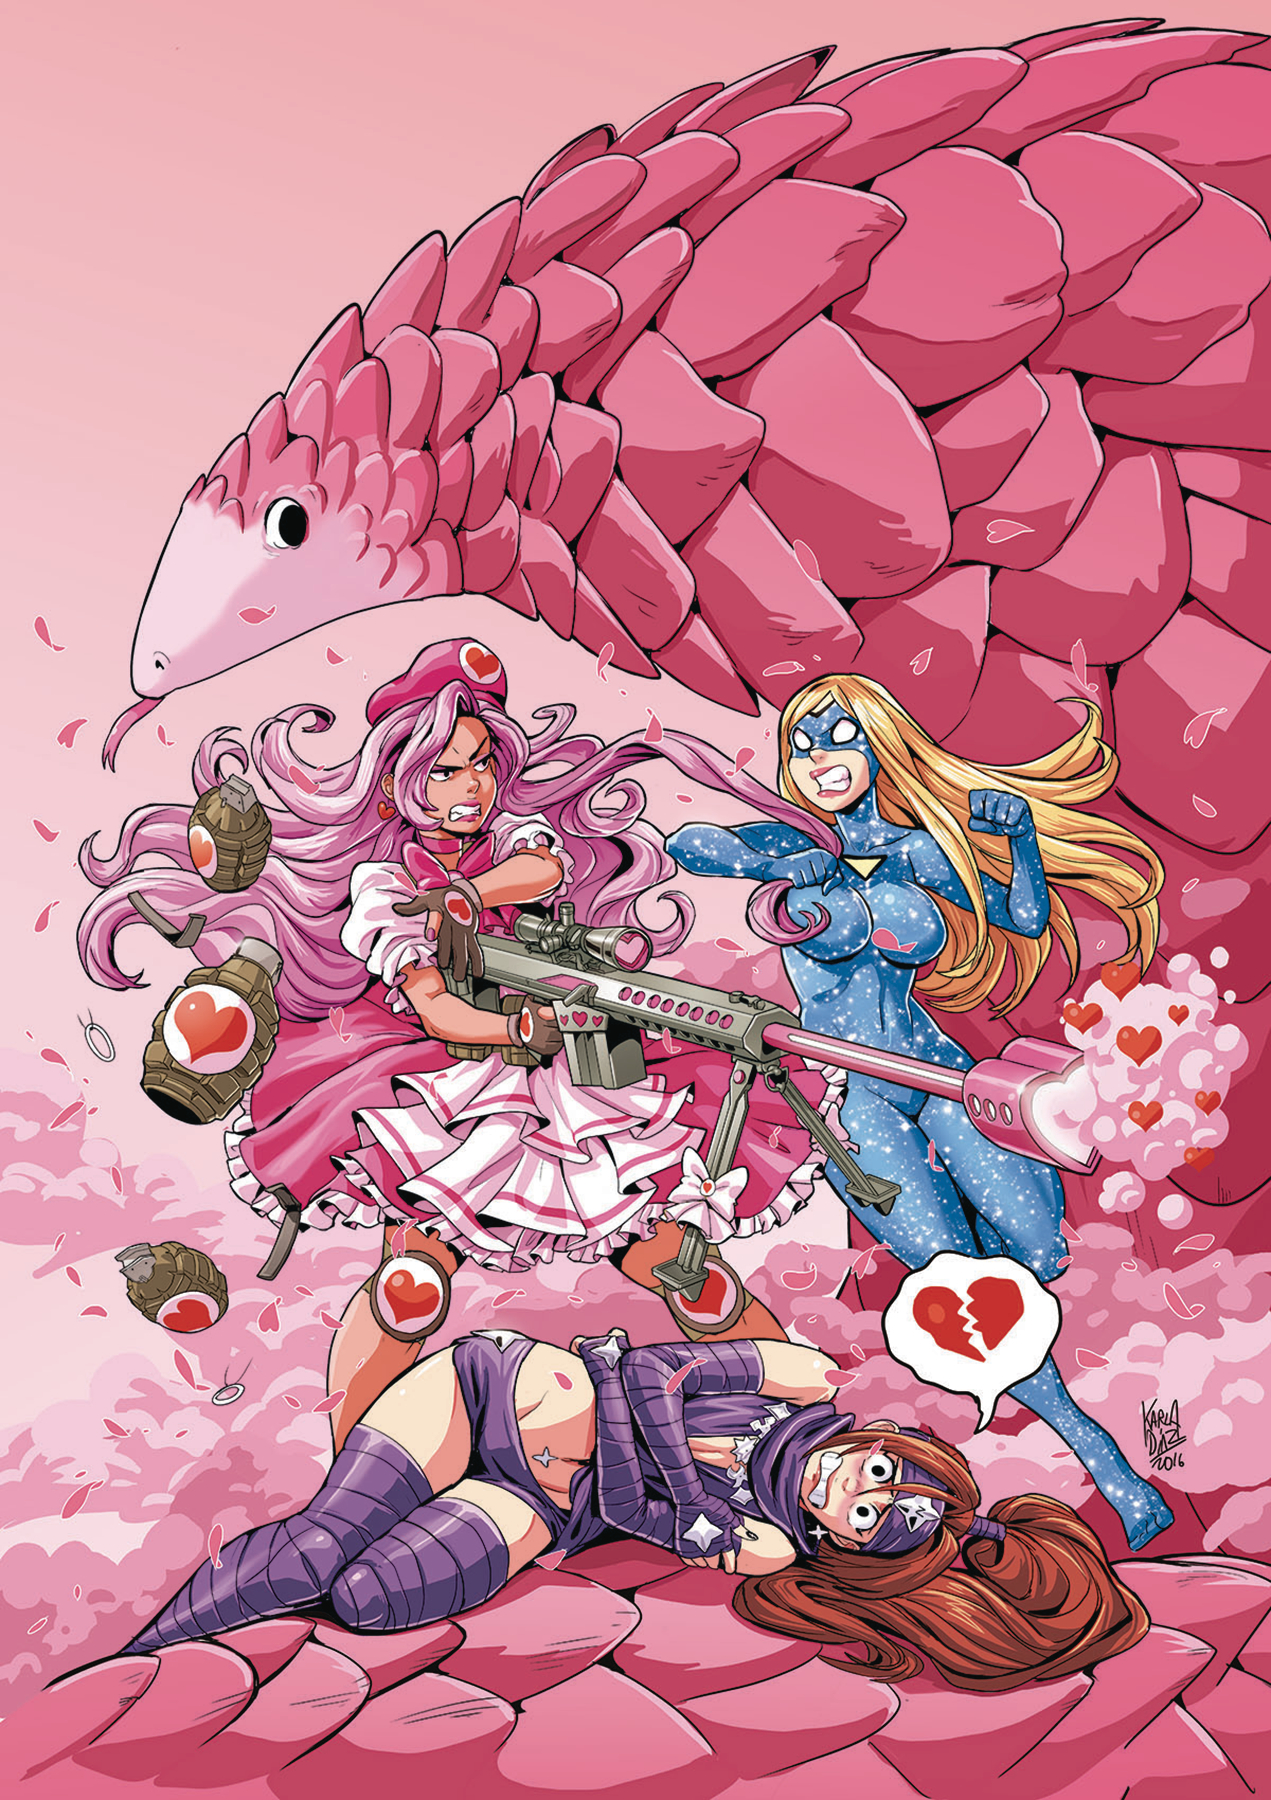 EMPOWERED SOLDIER OF LOVE #3